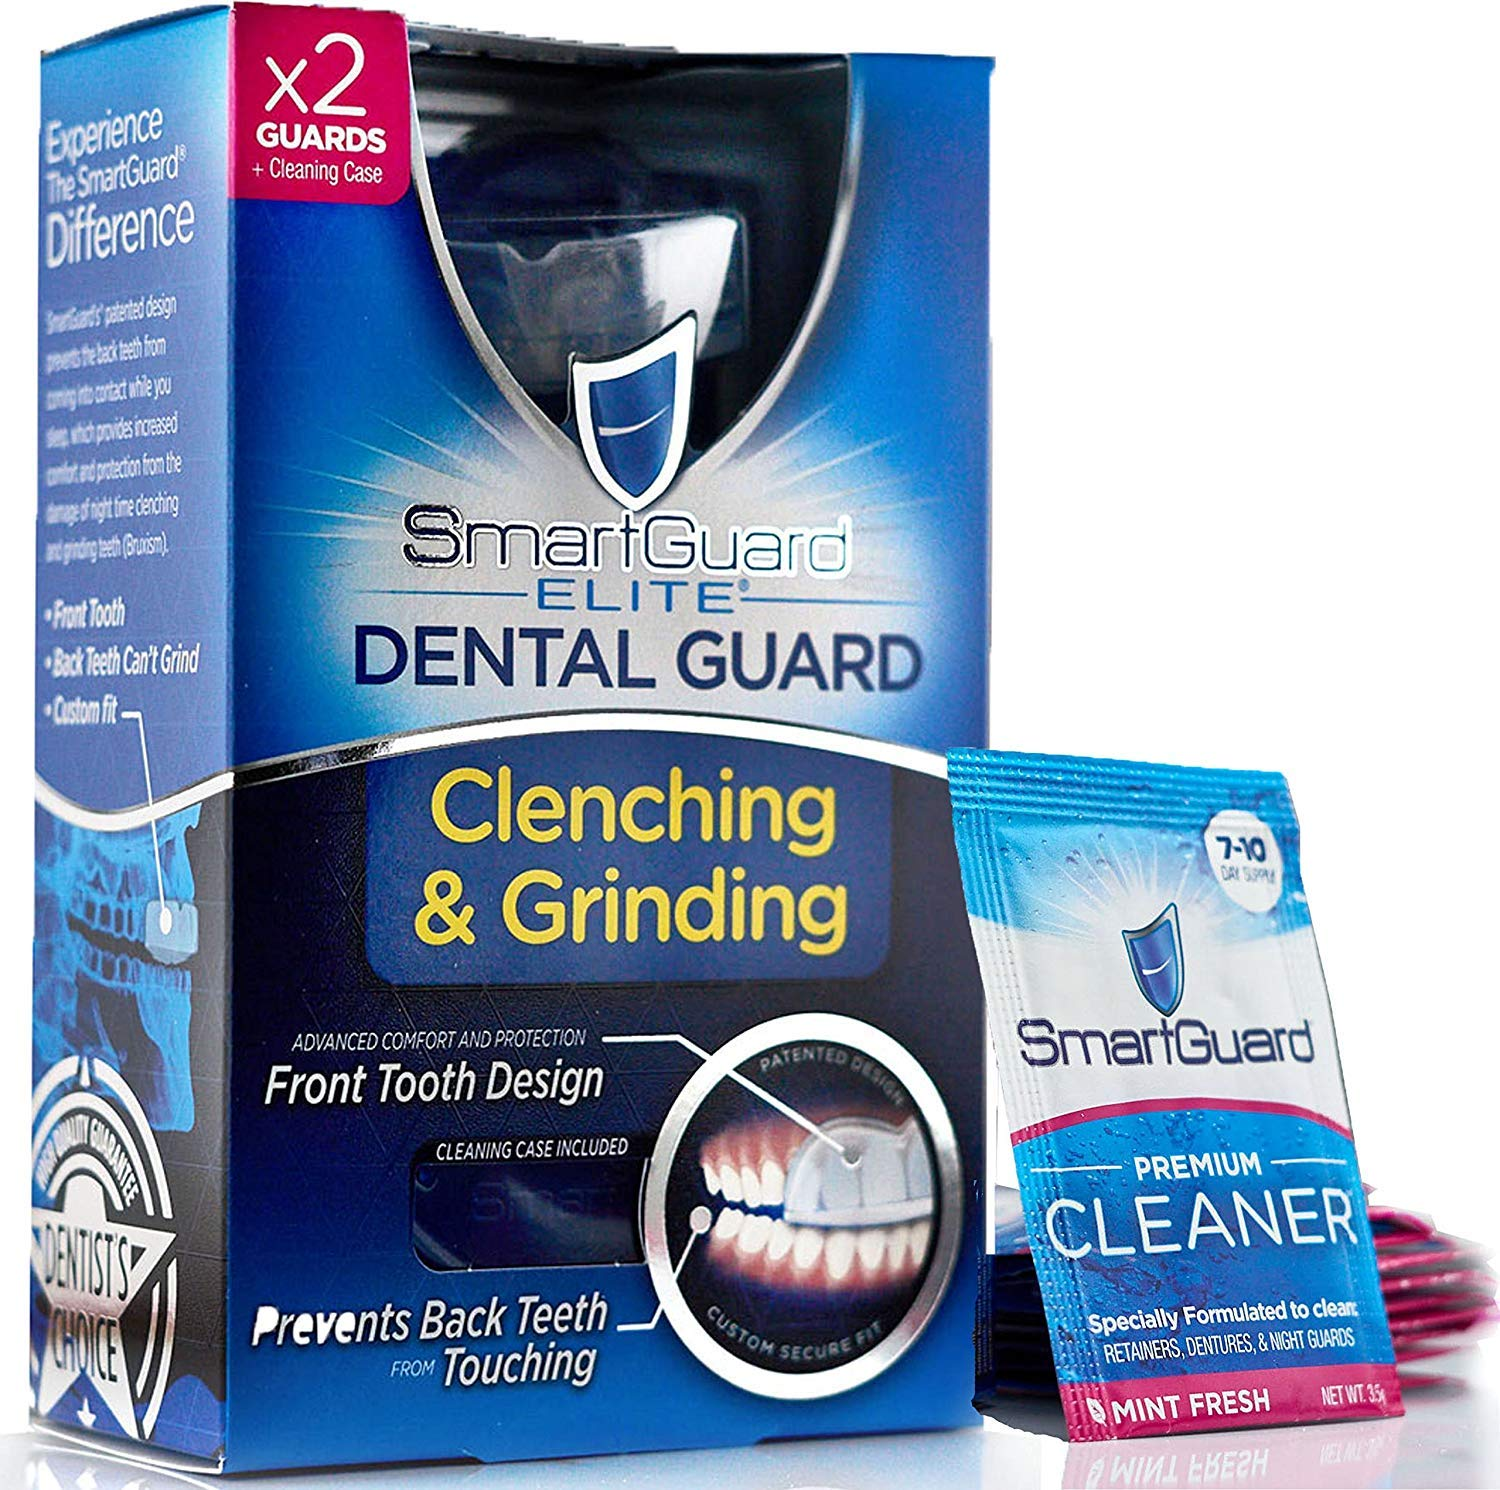 SmartGuard Elite Dental Guard (2 Guards) + Storage Case & 2 Months of Cleaning Crystals - TMJ Dentist Designed Night Guard for Clenching & Grinding. Made in USA by SmartGuard